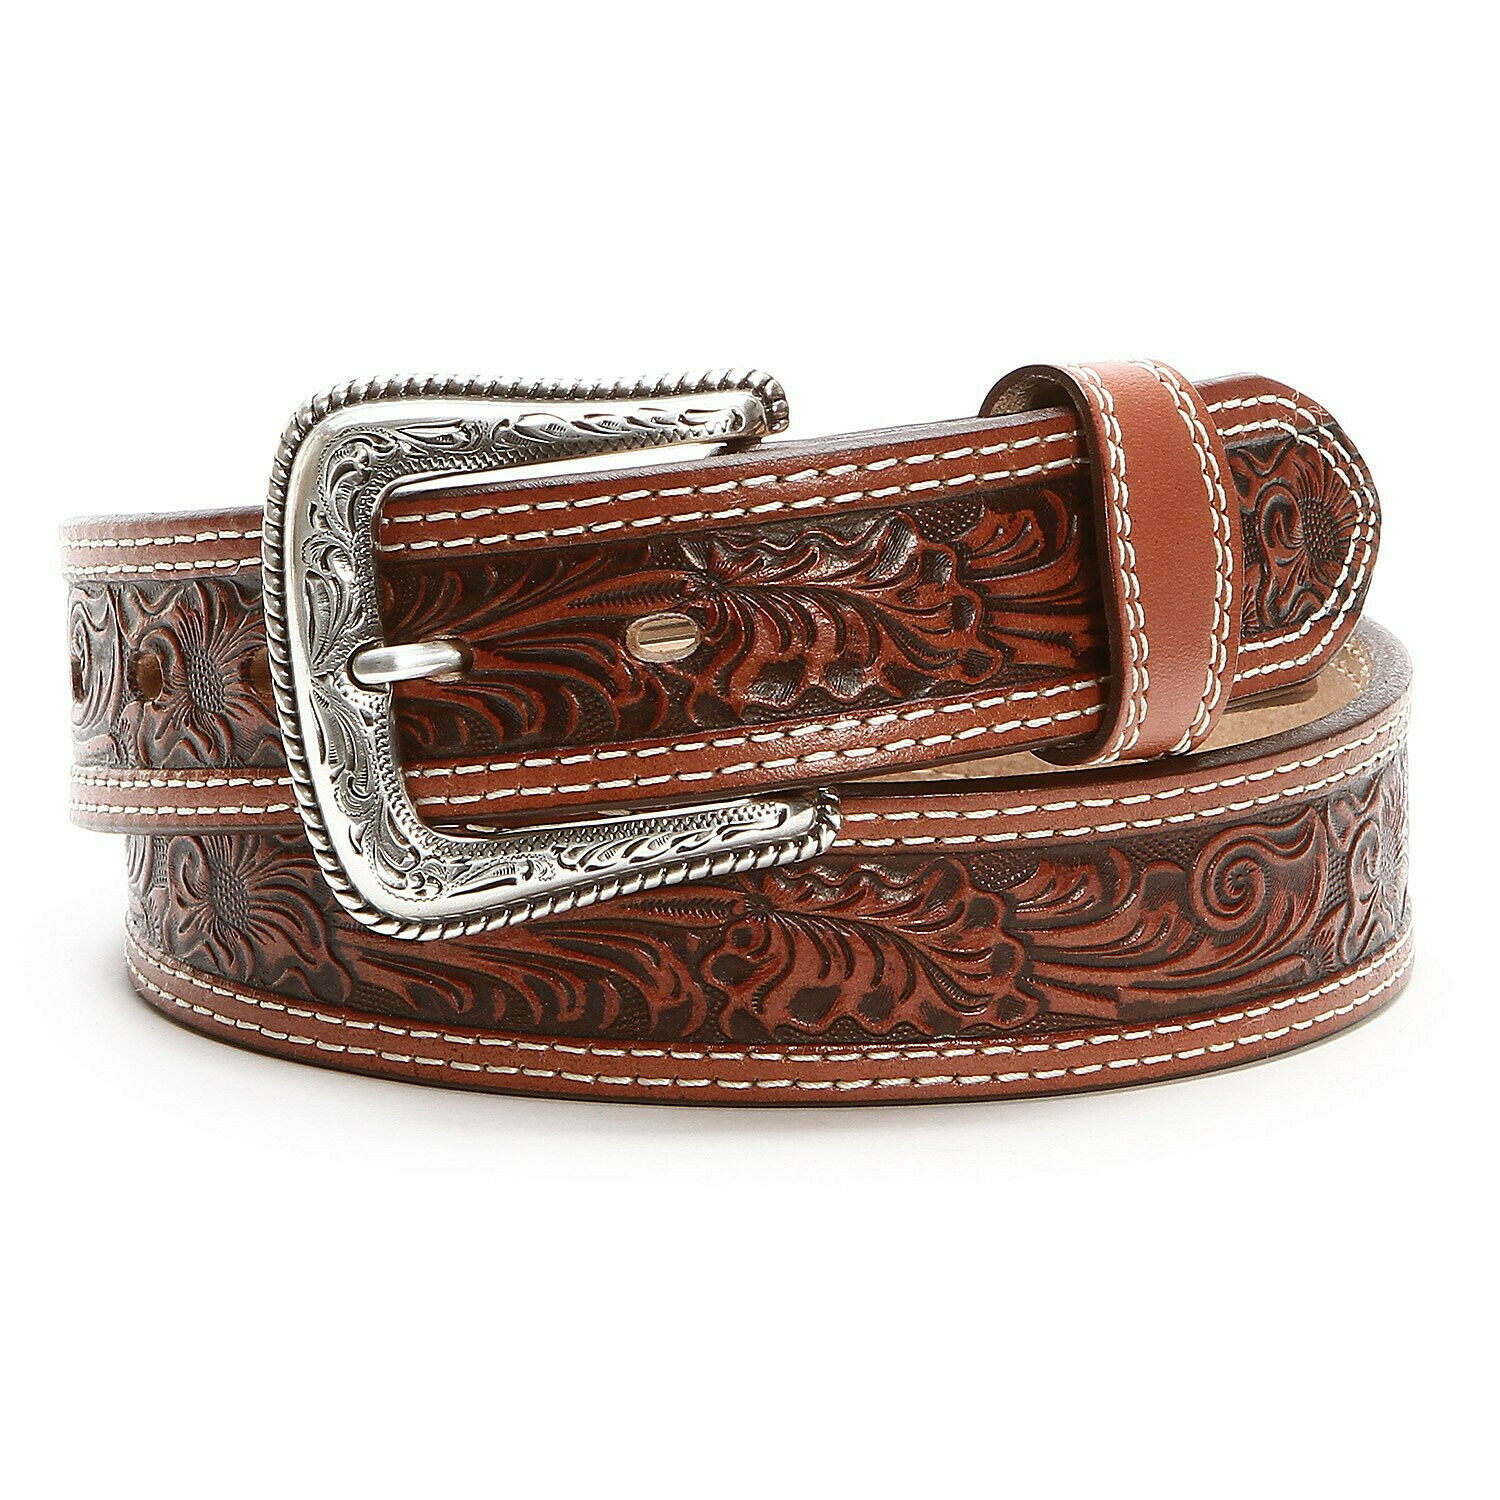 Nocona Western Mens Genuine Leather Belt Tooled Floral Patern Cinto Vaquero Piel